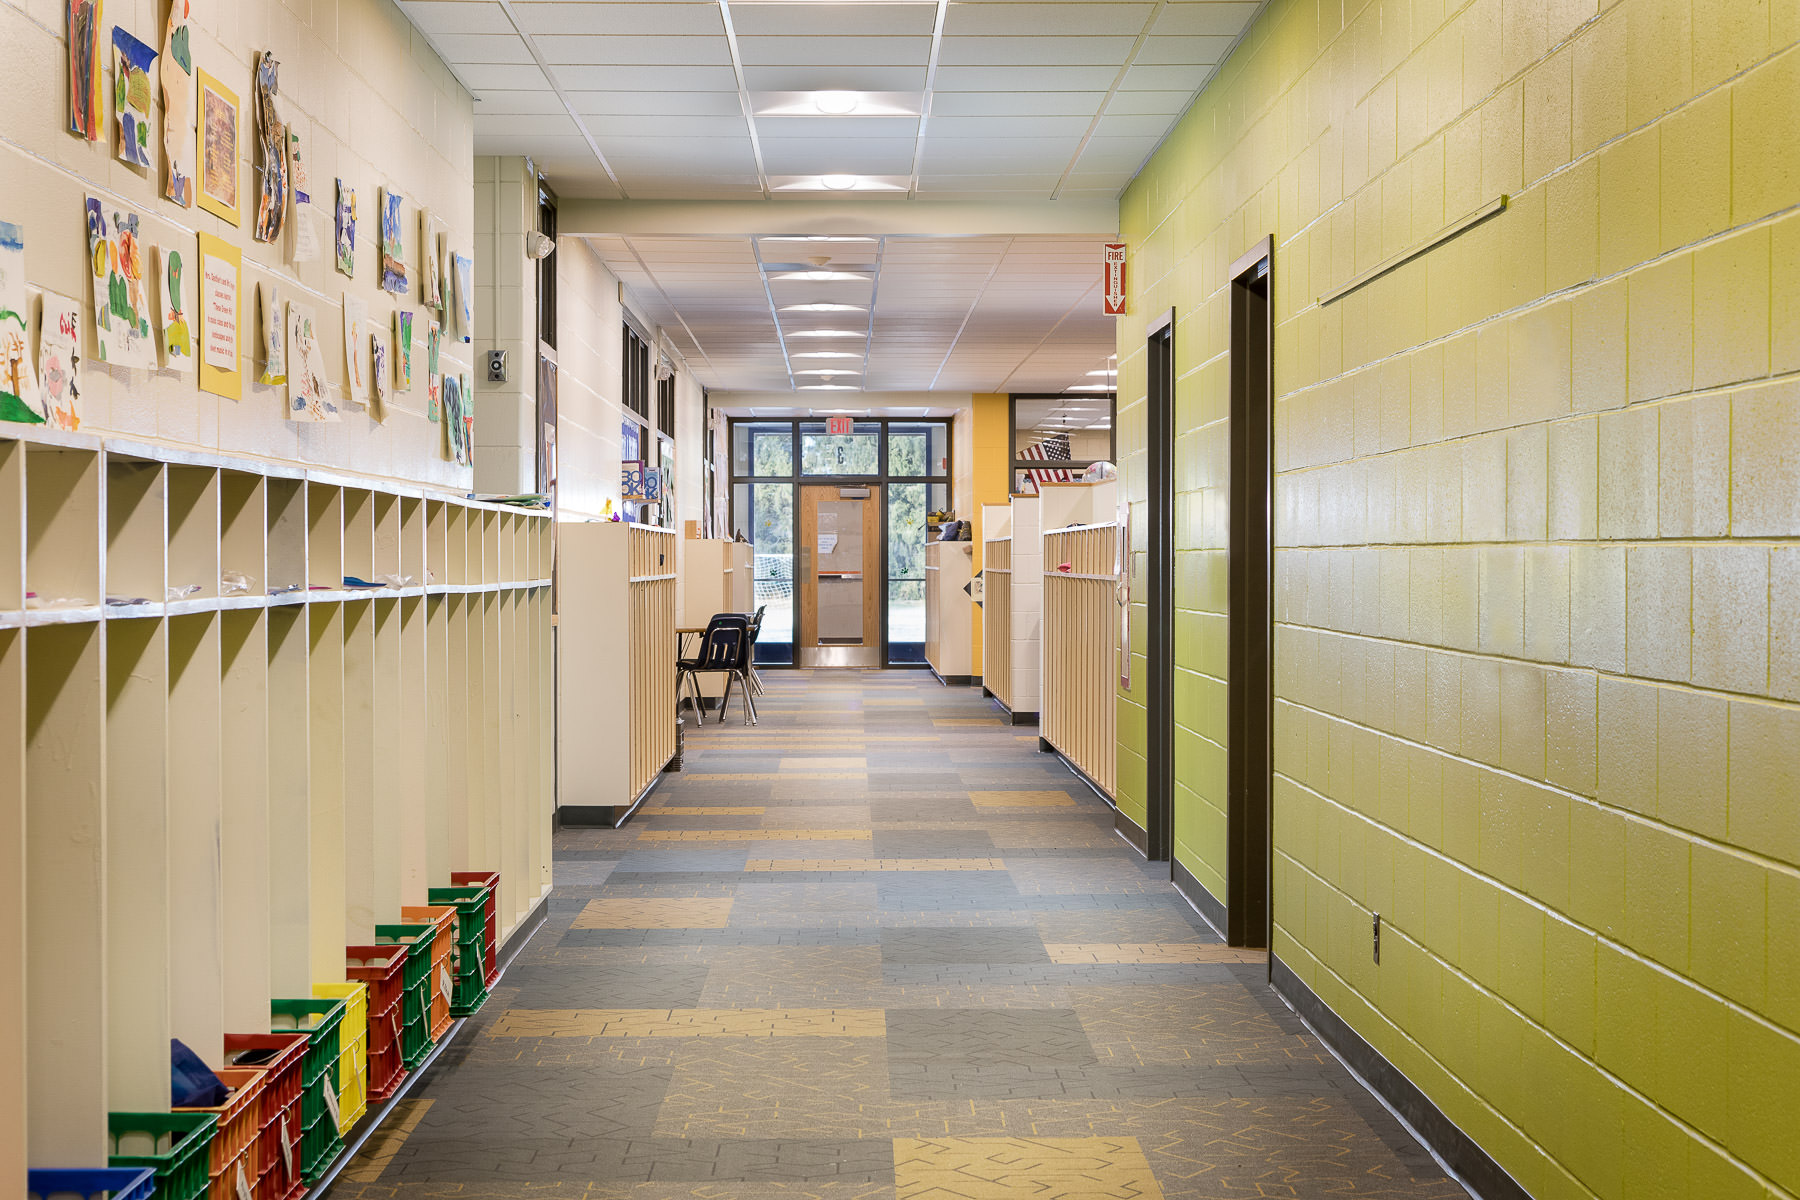 A photo of a classroom hallway at Berlin Elementary school photographed by Vermont professional photographer Stina Booth